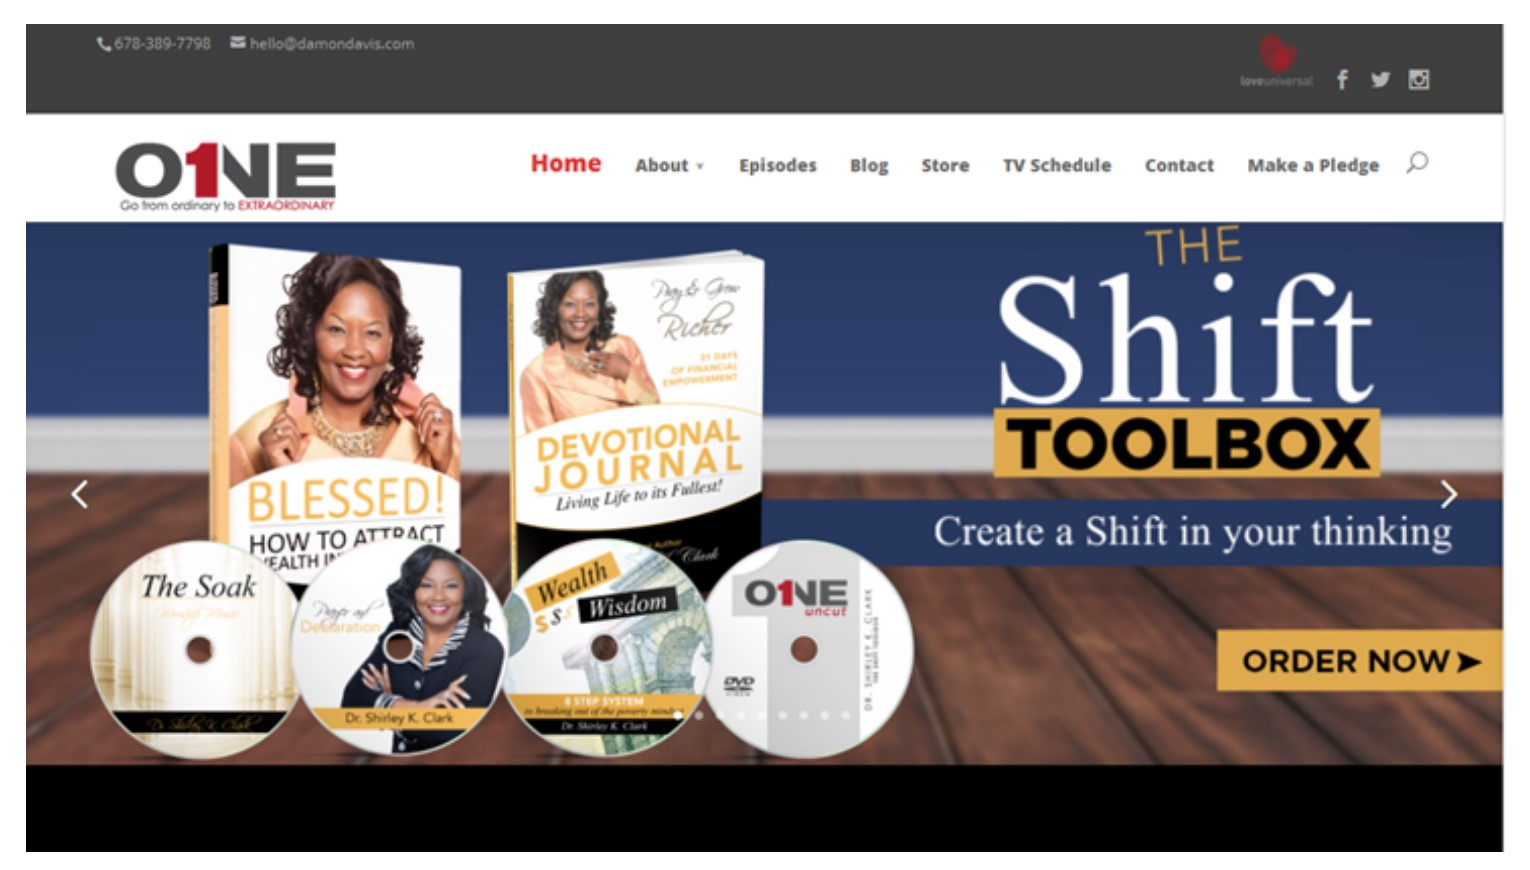 Shift Toolbox